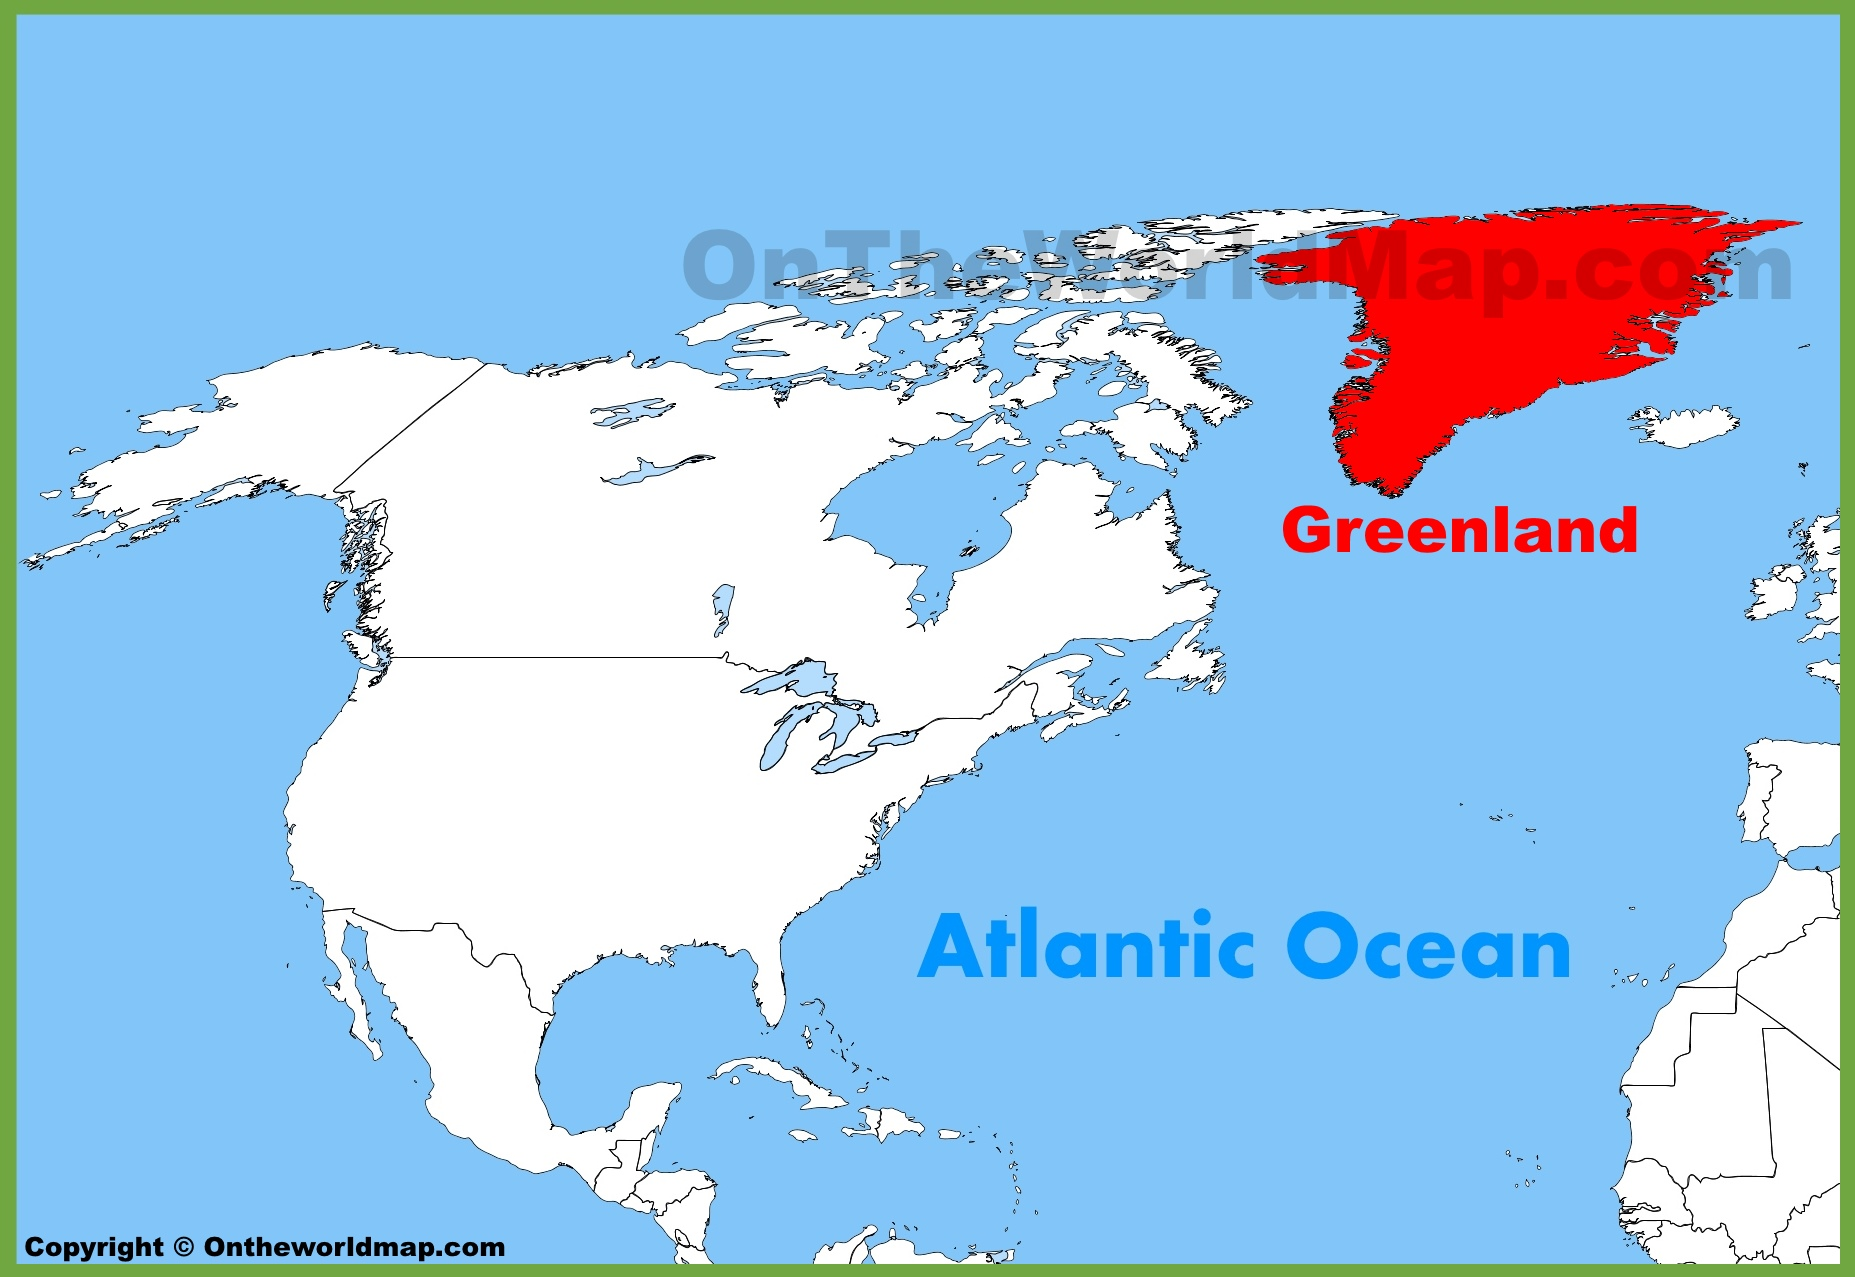 Greenland location on the north america map greenland location on the north america map gumiabroncs Image collections